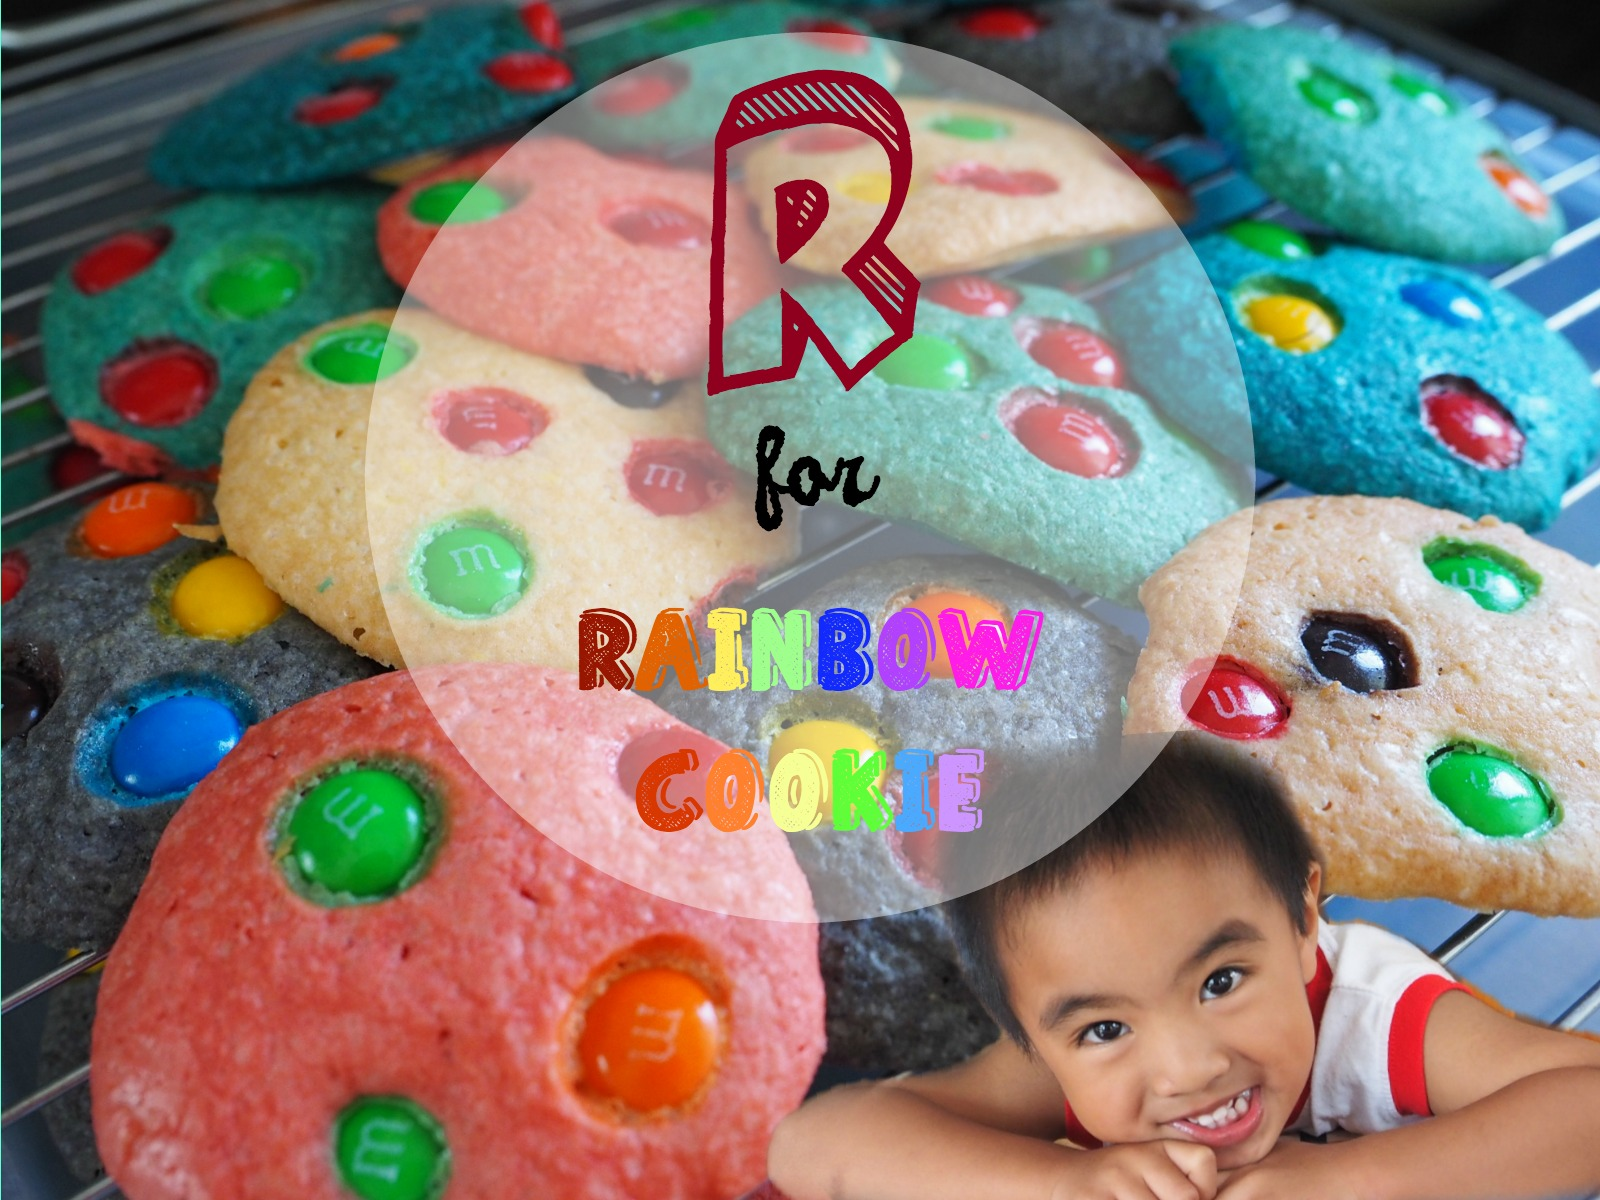 R for rainbow cookie